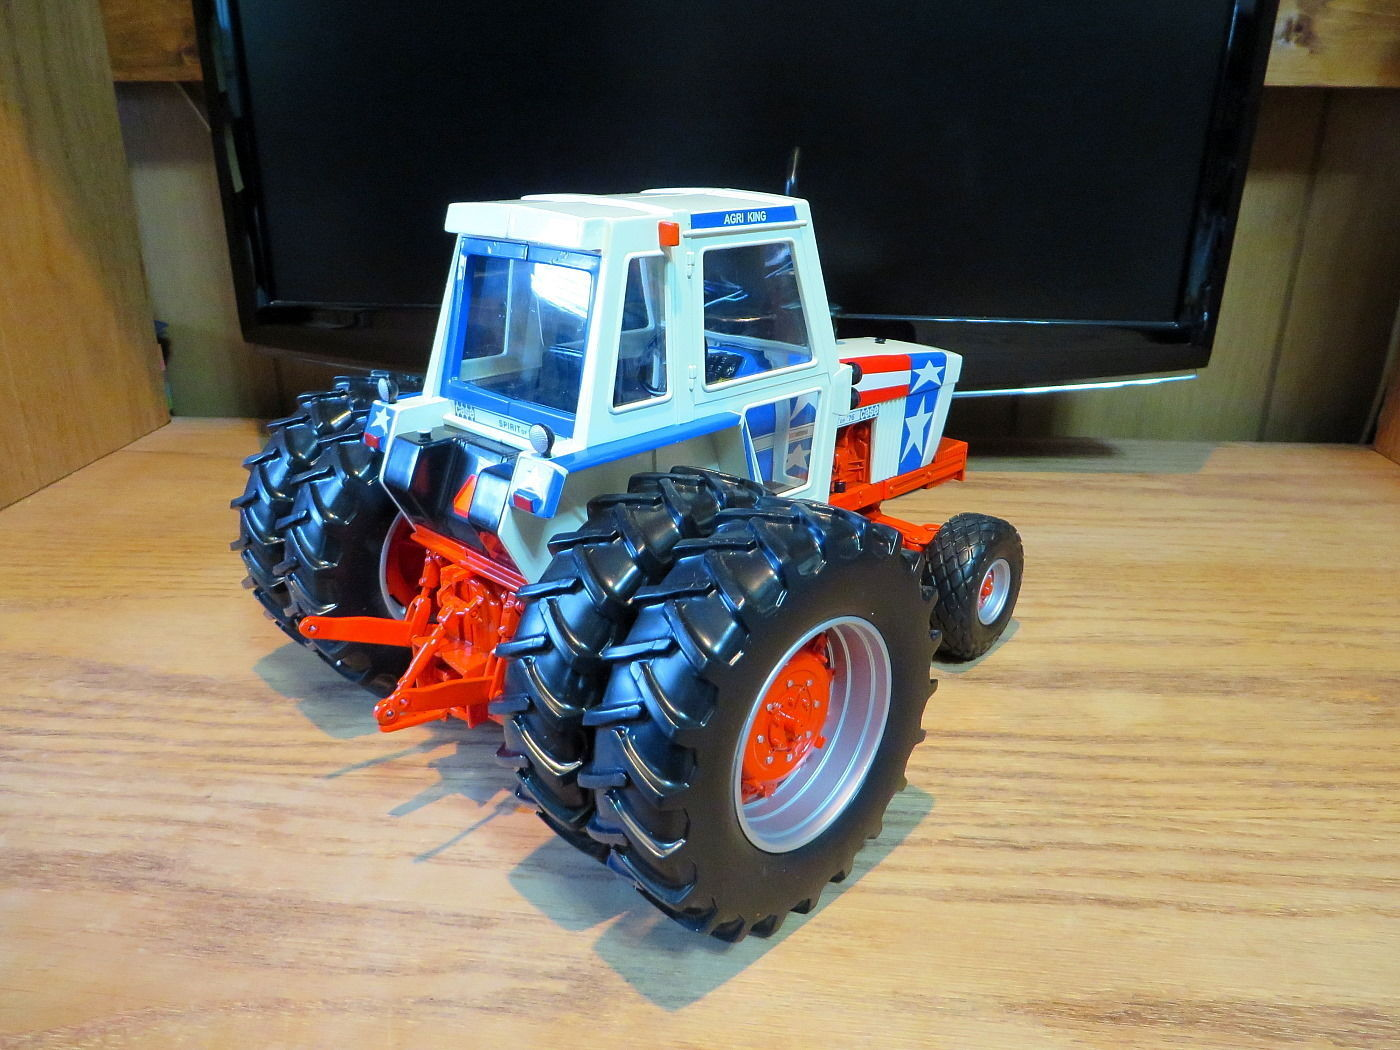 Case 1570 Spirit of 1976 The Toy Tractor Times 1:16 Diecast Ertl